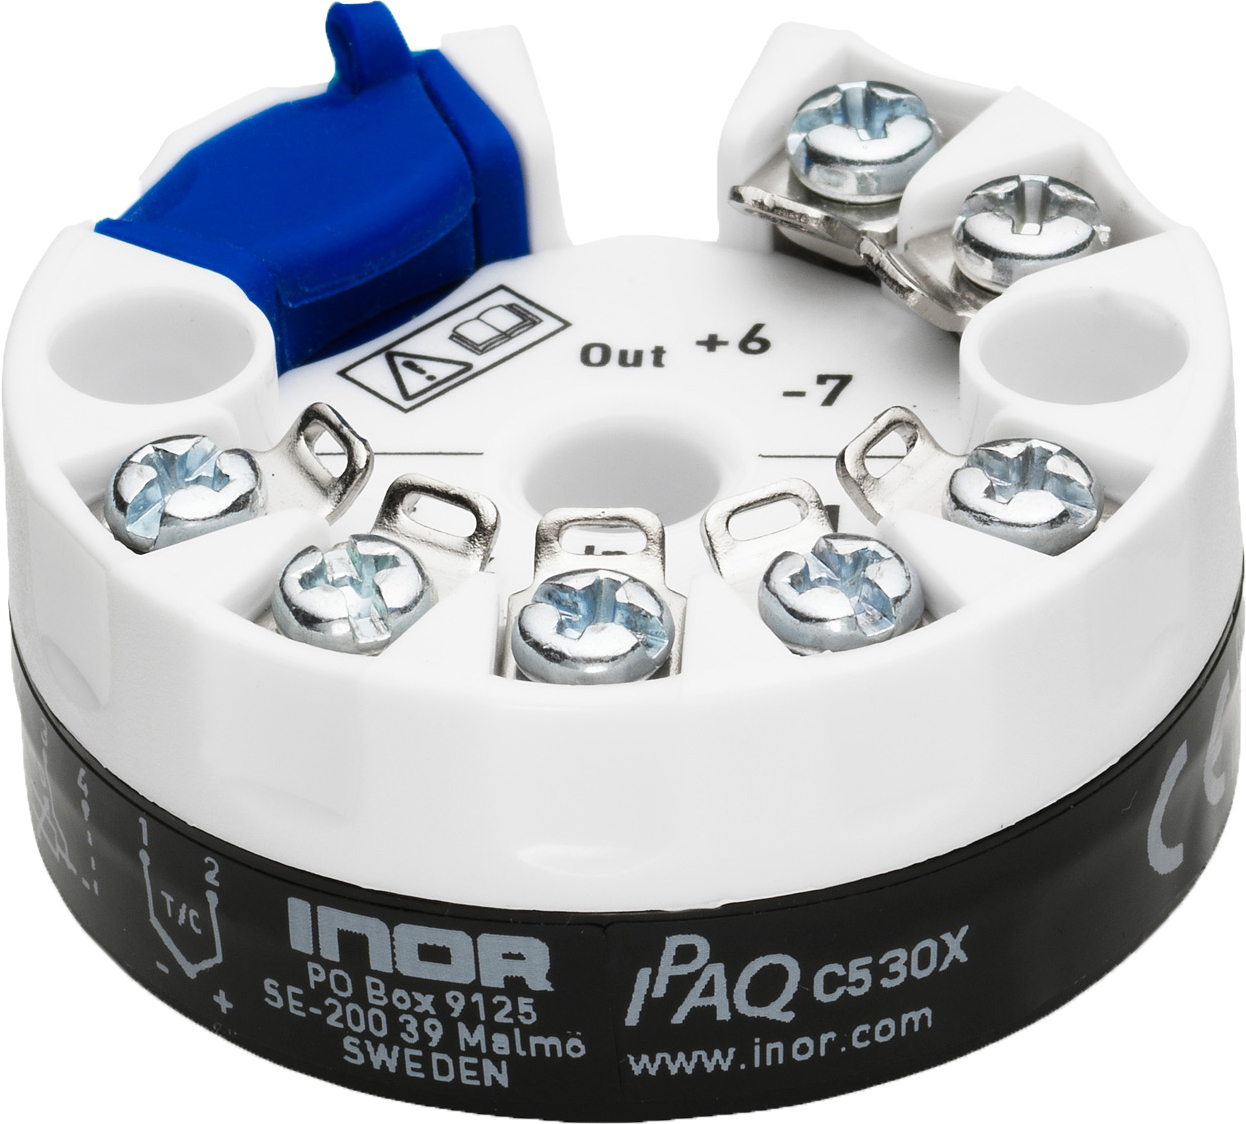 ipaq-c530x-in-head-hart-compatible-universal-2-wire-transmitter-iecex-atex-approval